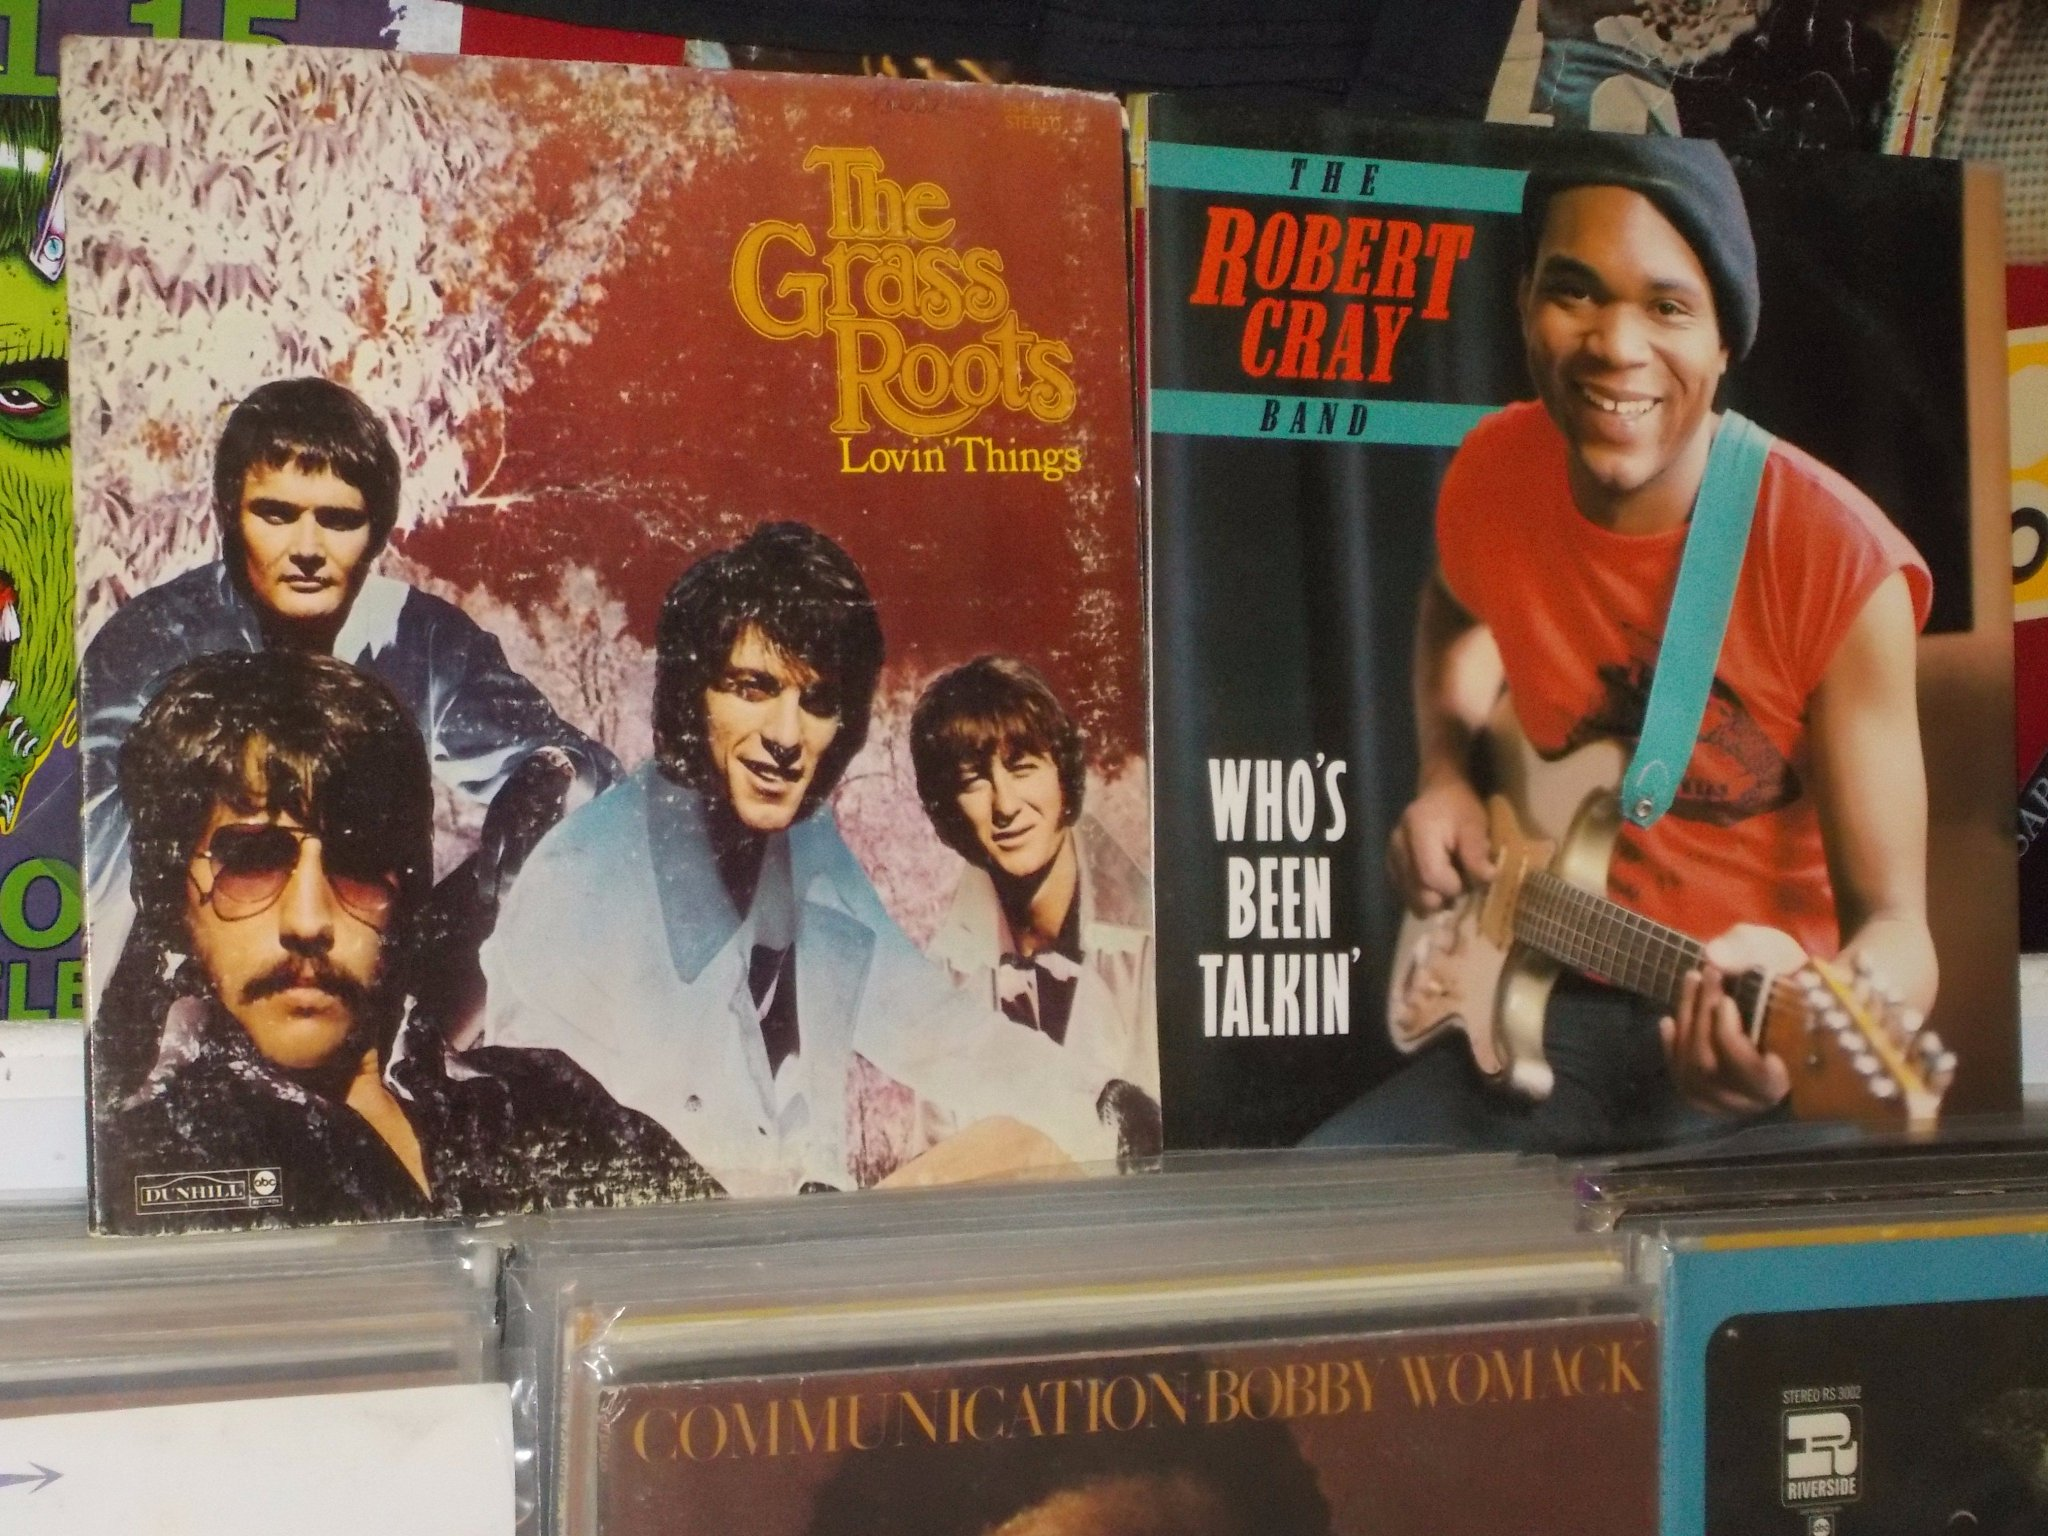 Happy Birthday to the late Rick Coonce of the Grass Roots & Robert Cray